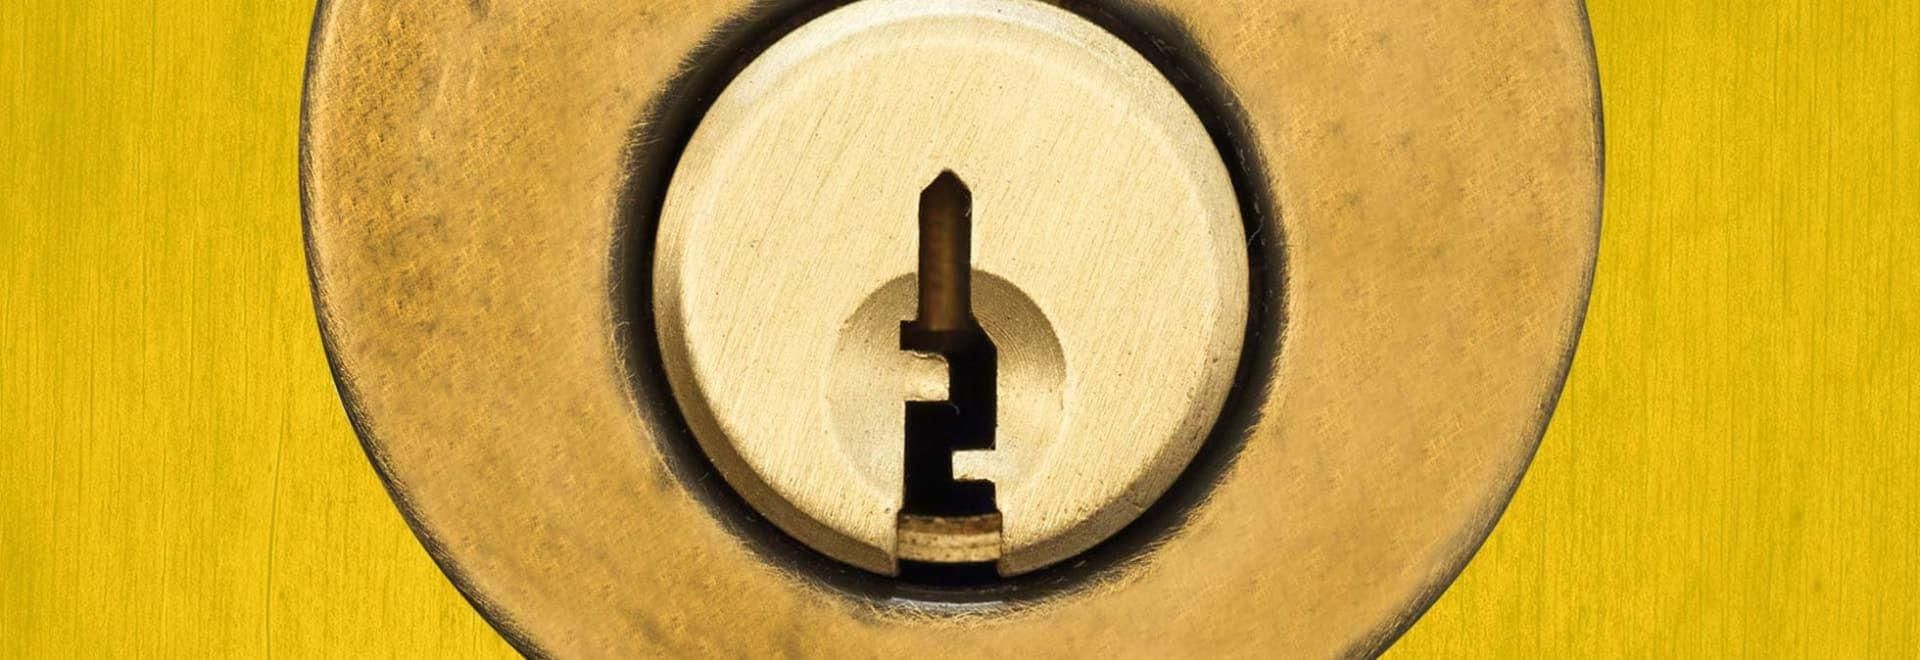 5 Door locks That Will Keep You Safe and 5 That Won't # ...